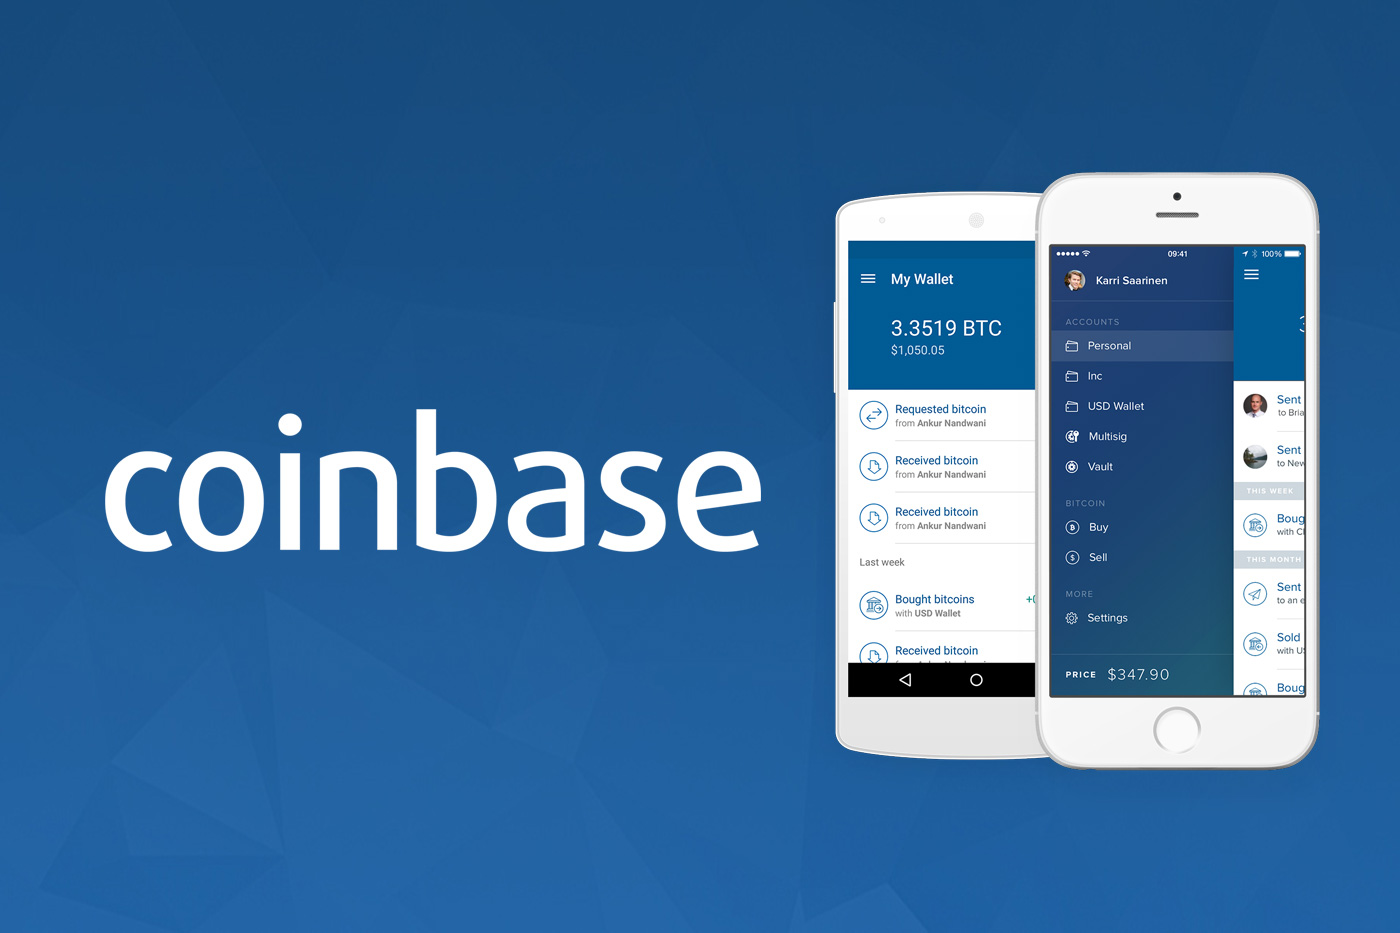 Coinbase Verified Account